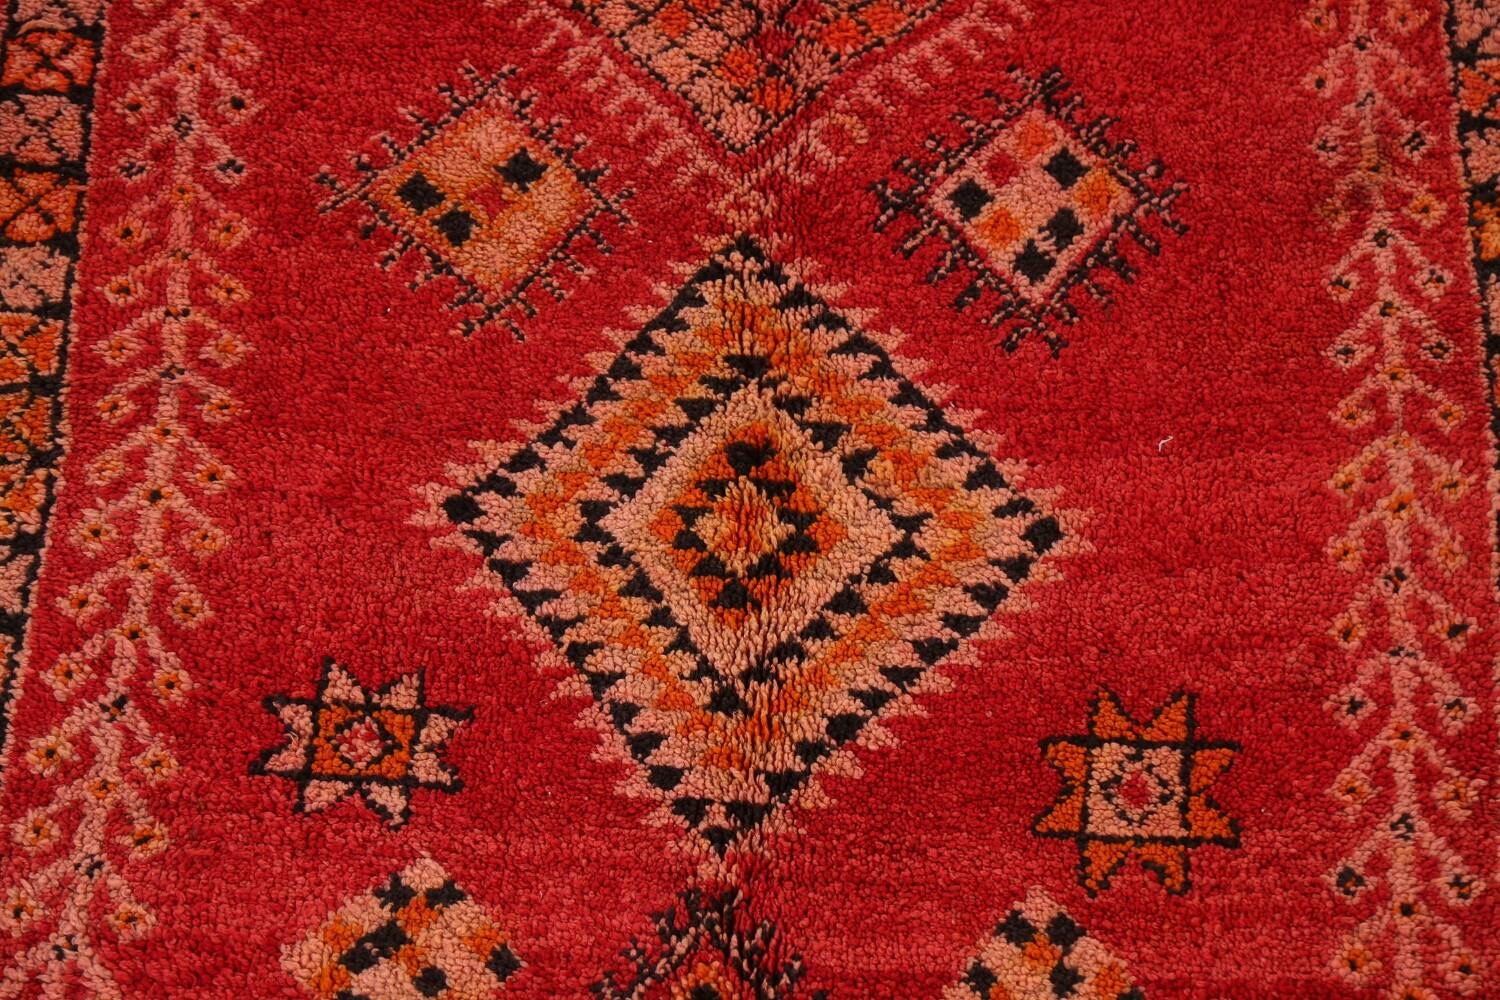 Red Moroccan Berber Area Rug 6x11 image 4